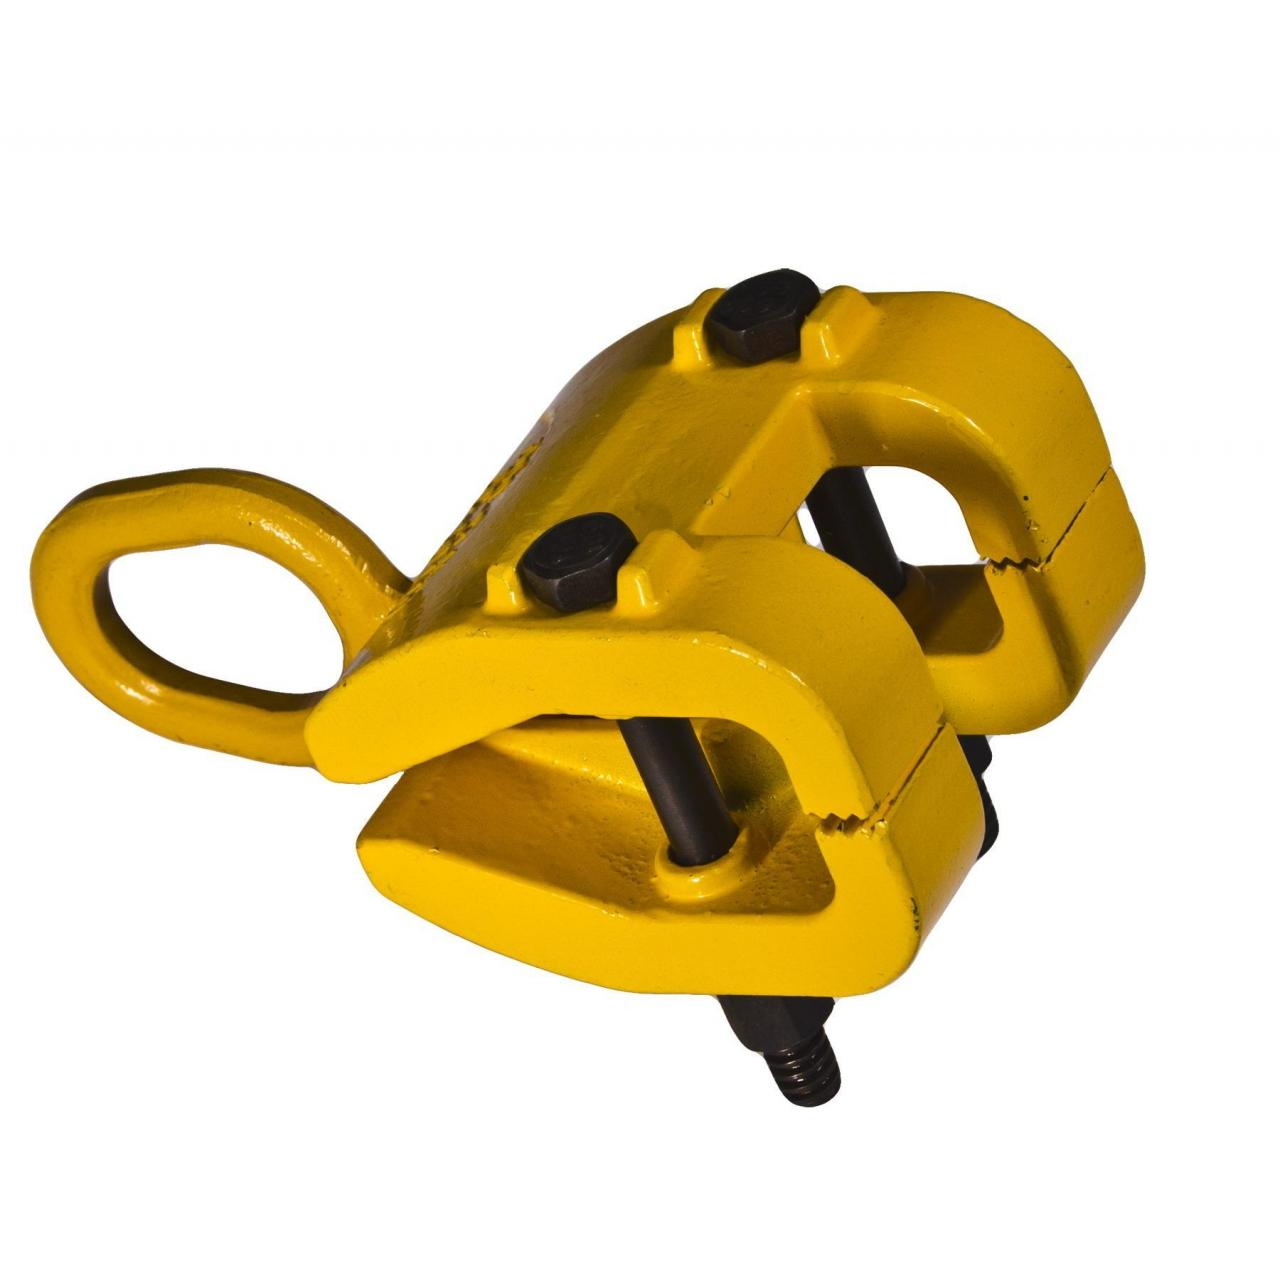 DC-G0440 Twin Claw Clamp